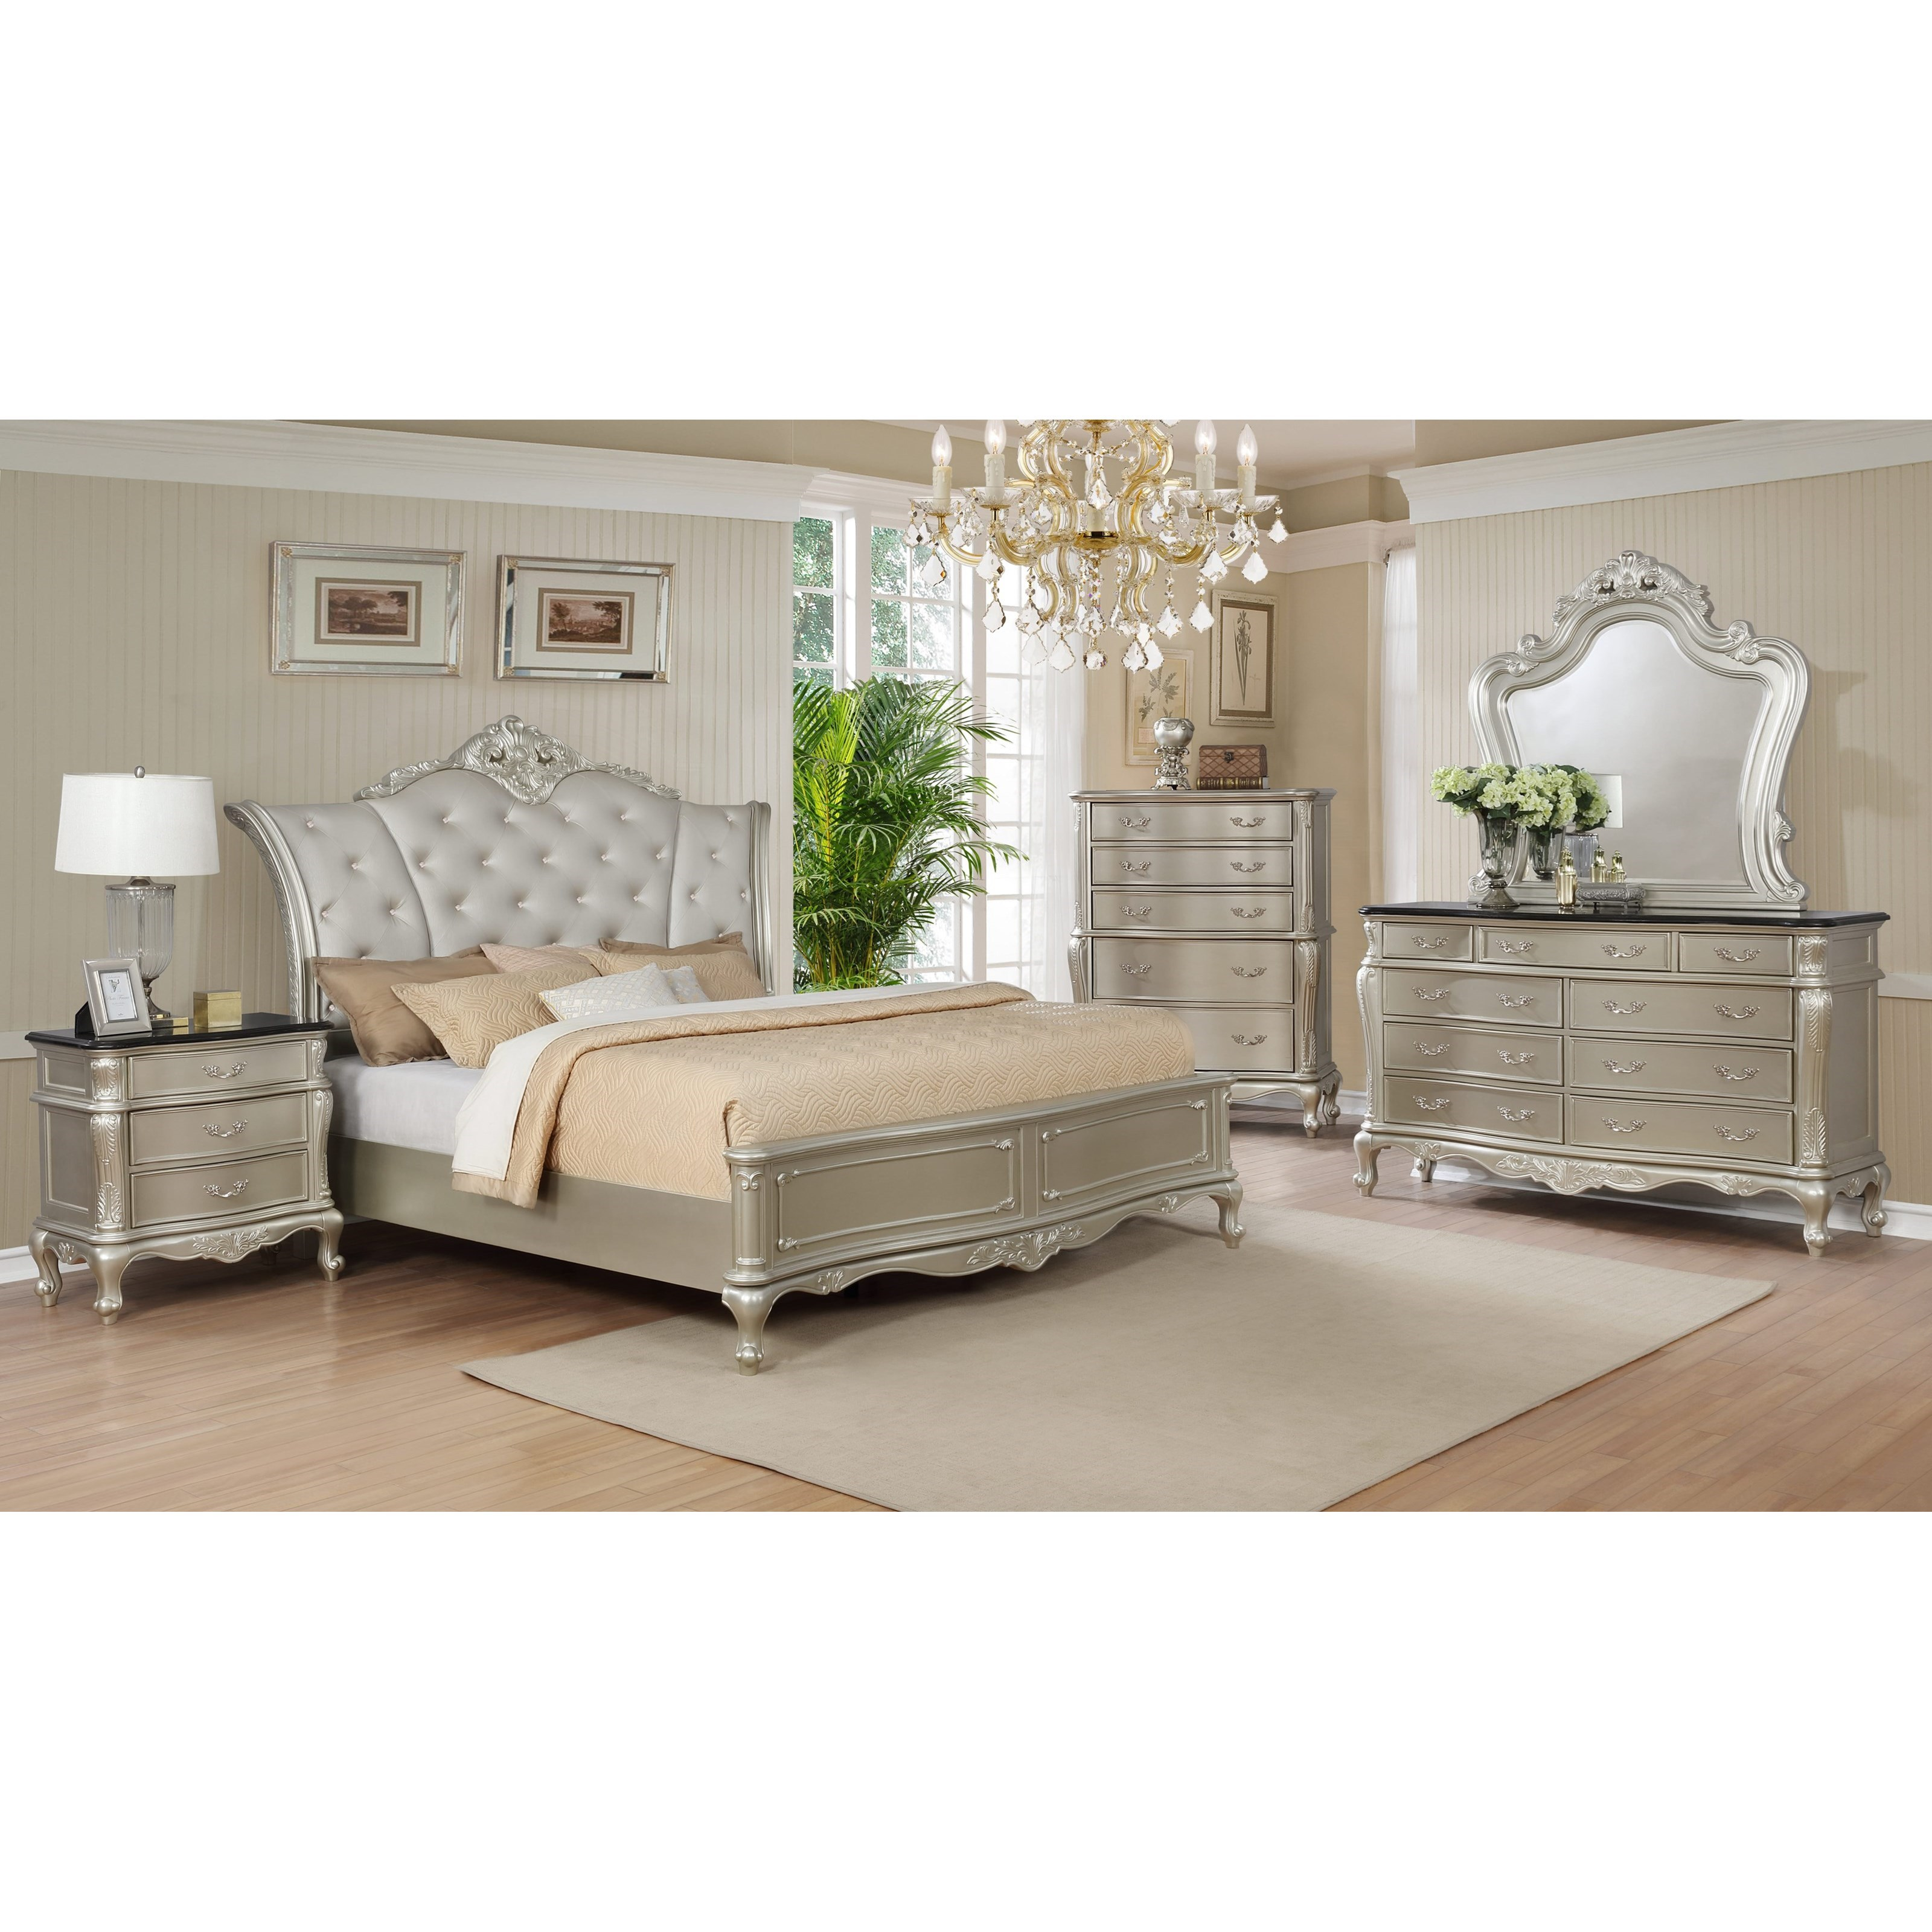 Crown mark angelina king bedroom group colder 39 s furniture and appliance bedroom groups for Angelina bedroom furniture set